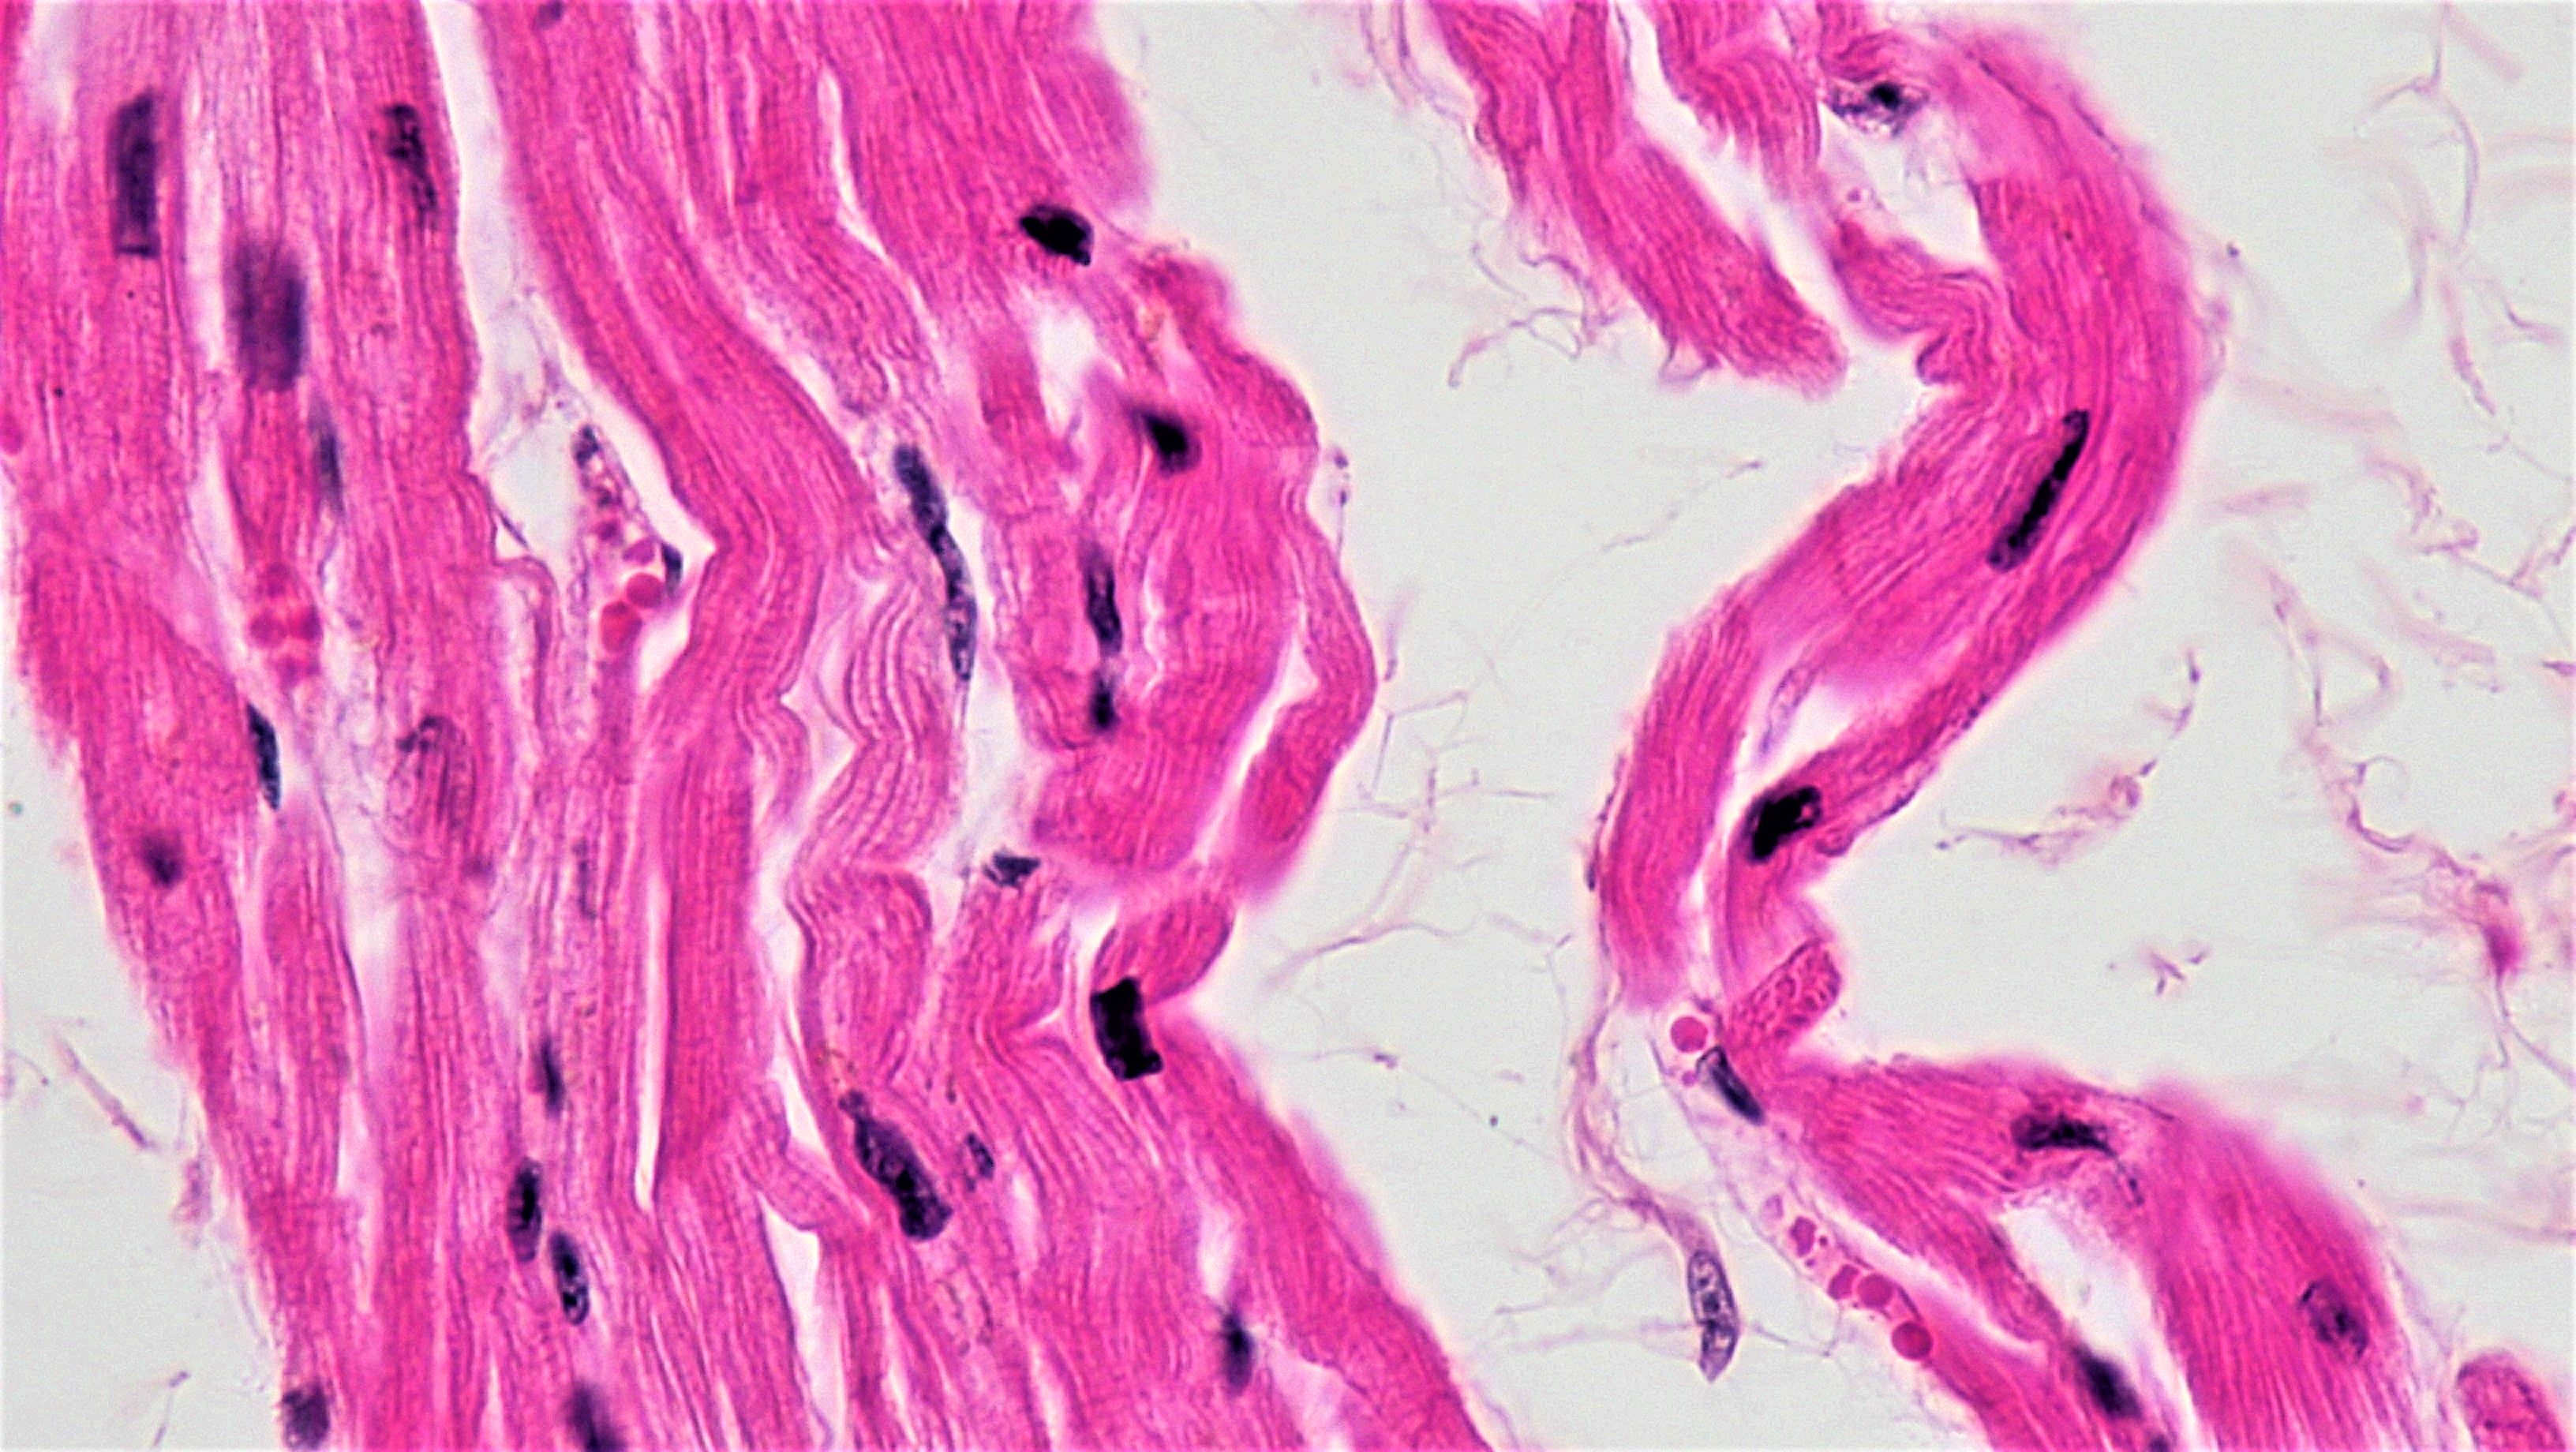 Filemuscle Tissue Cardiac Muscle 42013029032g Wikimedia Commons